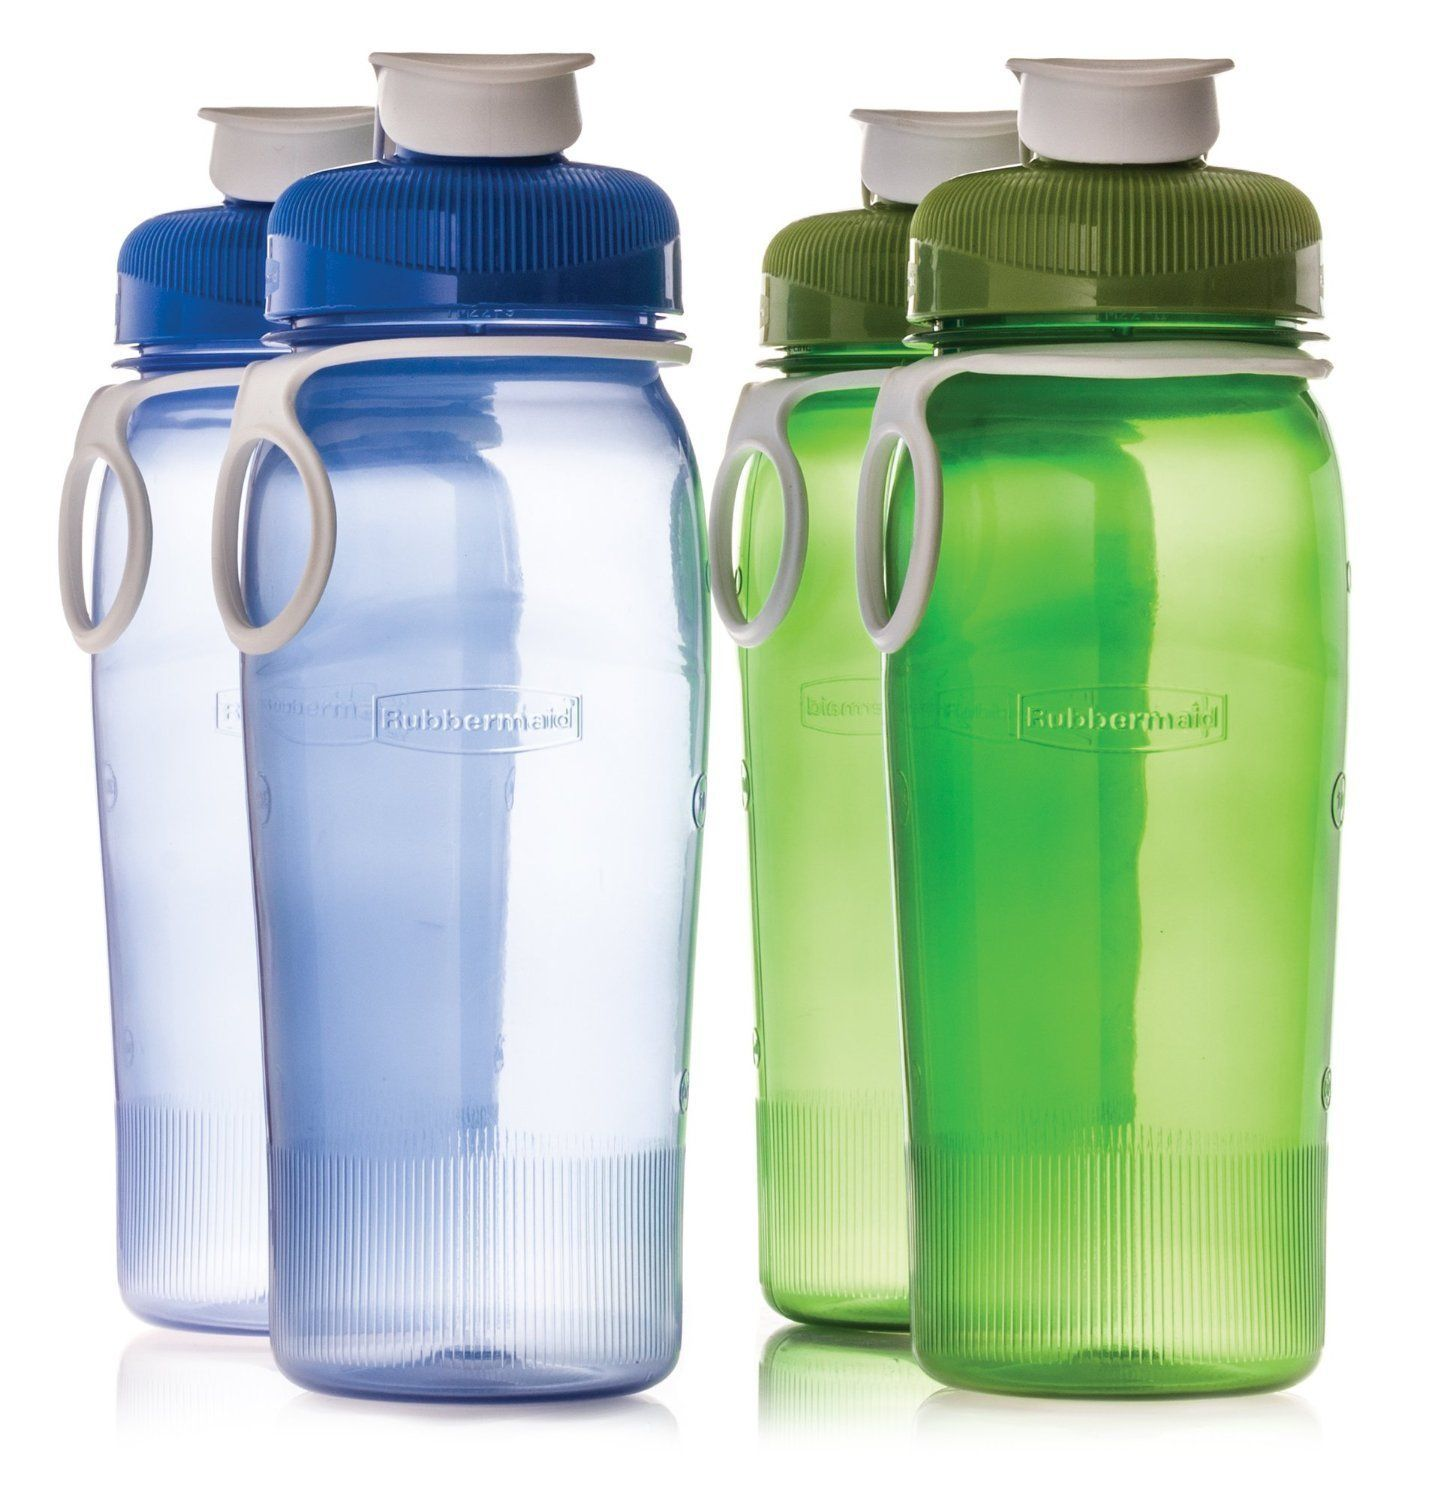 Amazon Com Rubbermaid Refill Reuse 20 Ounce Chug Bottle 4 Pack Sports Water Bottles Kitchen Dining Water Bottle Best Water Bottle Bulk Water Bottles